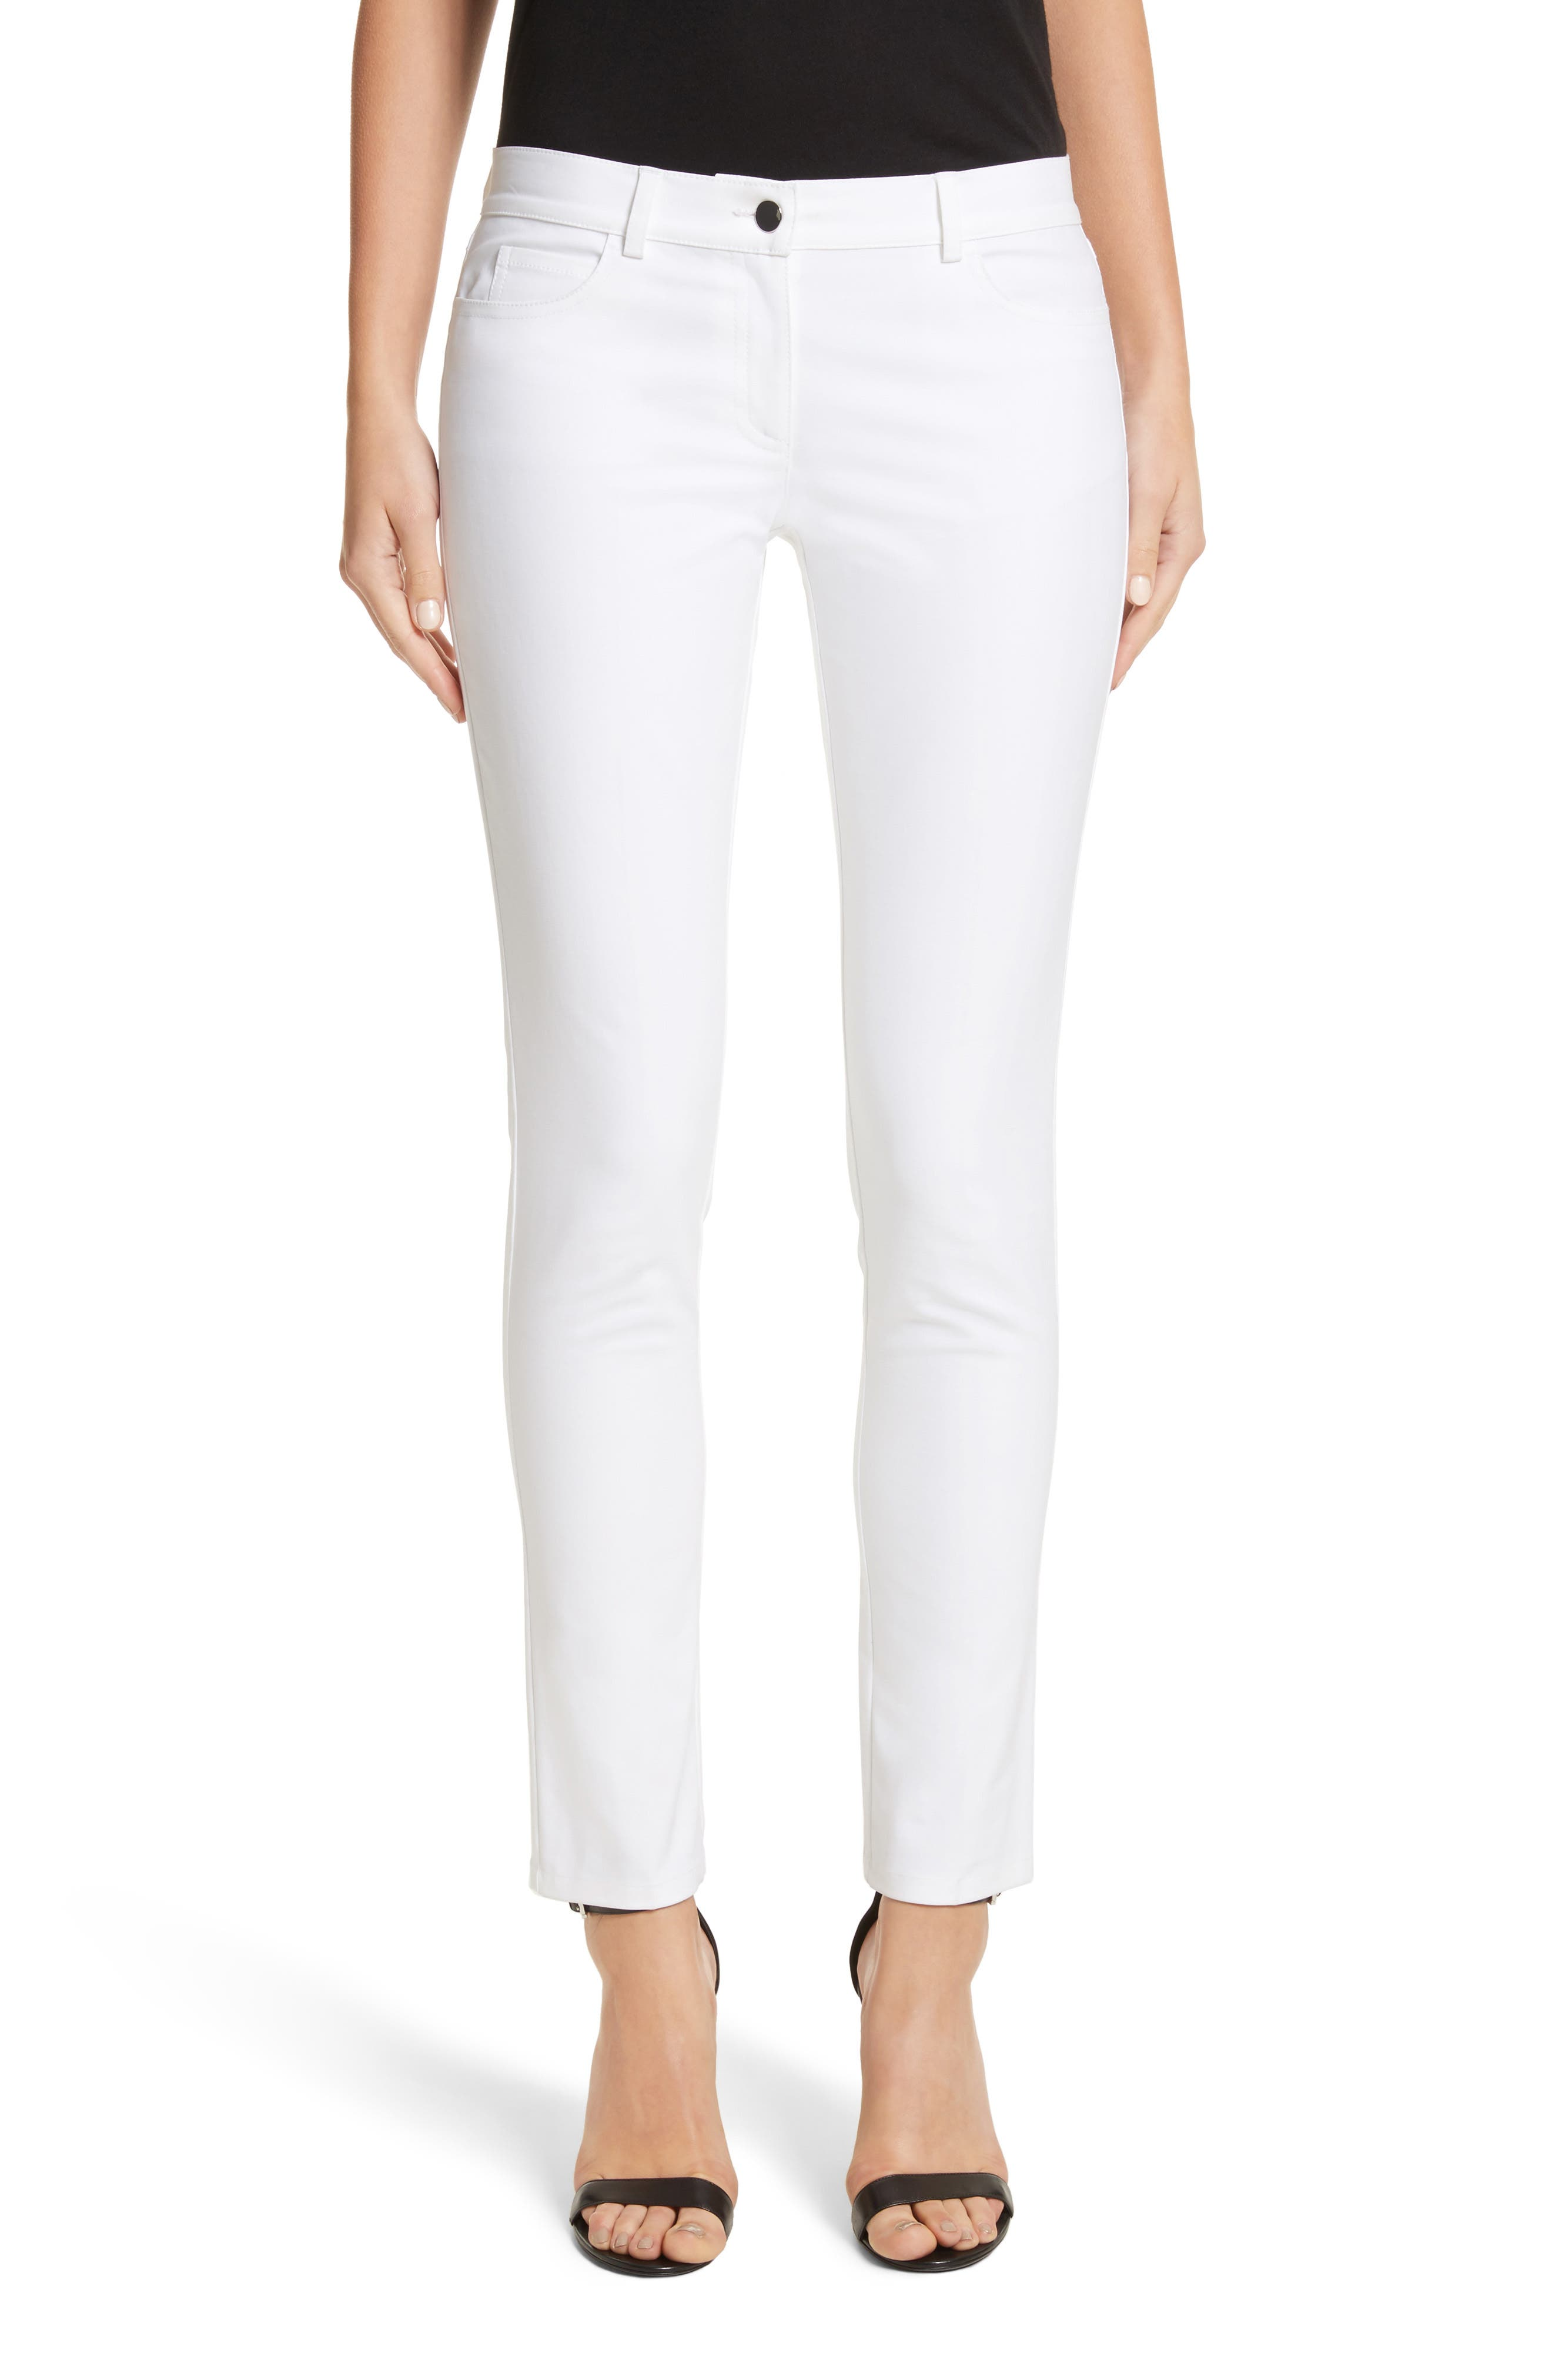 Samantha Skinny Jeans,                         Main,                         color, Optic White